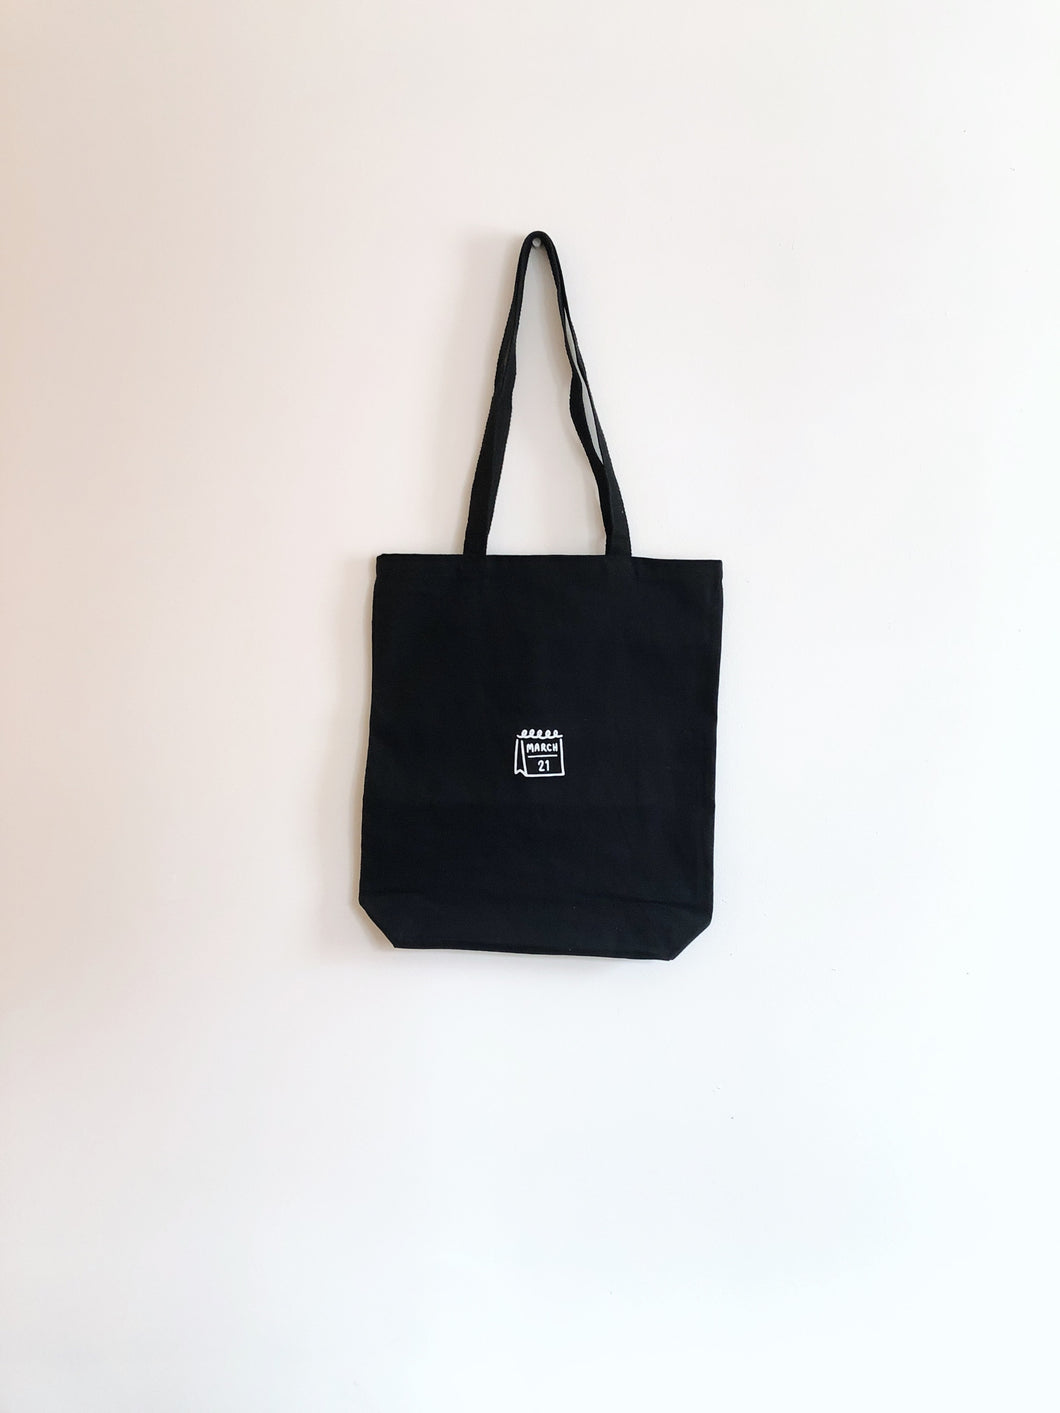 No Coffee No Mercy Tote from March 21 (tax incl)